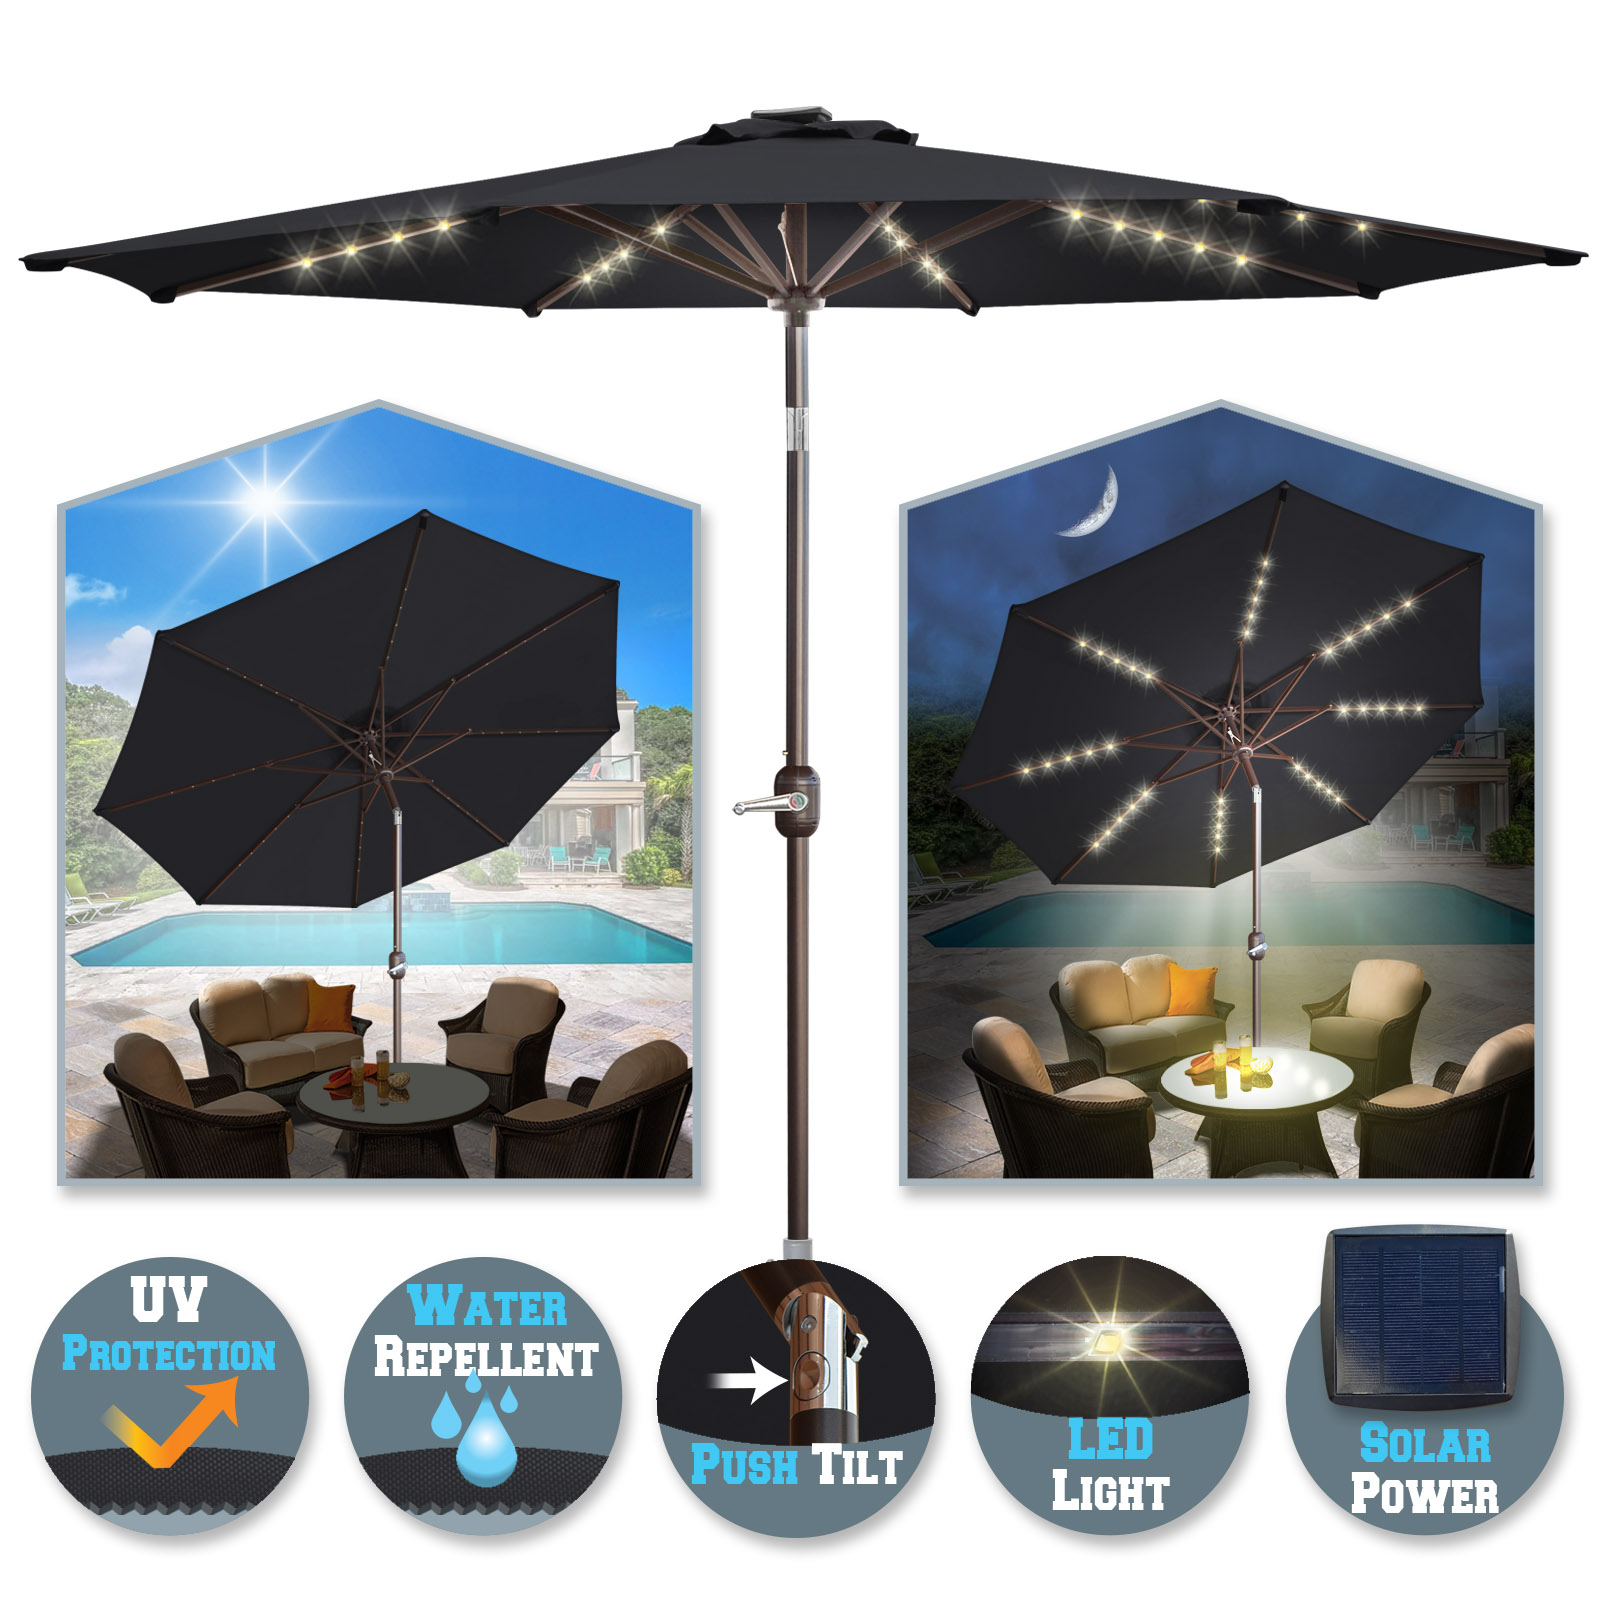 Sunrise 9' Outdoor Patio Solar Umbrella with 40 LED lights and 8 Ribs, Garden Sunshade with Crank and Tilt (Brown)